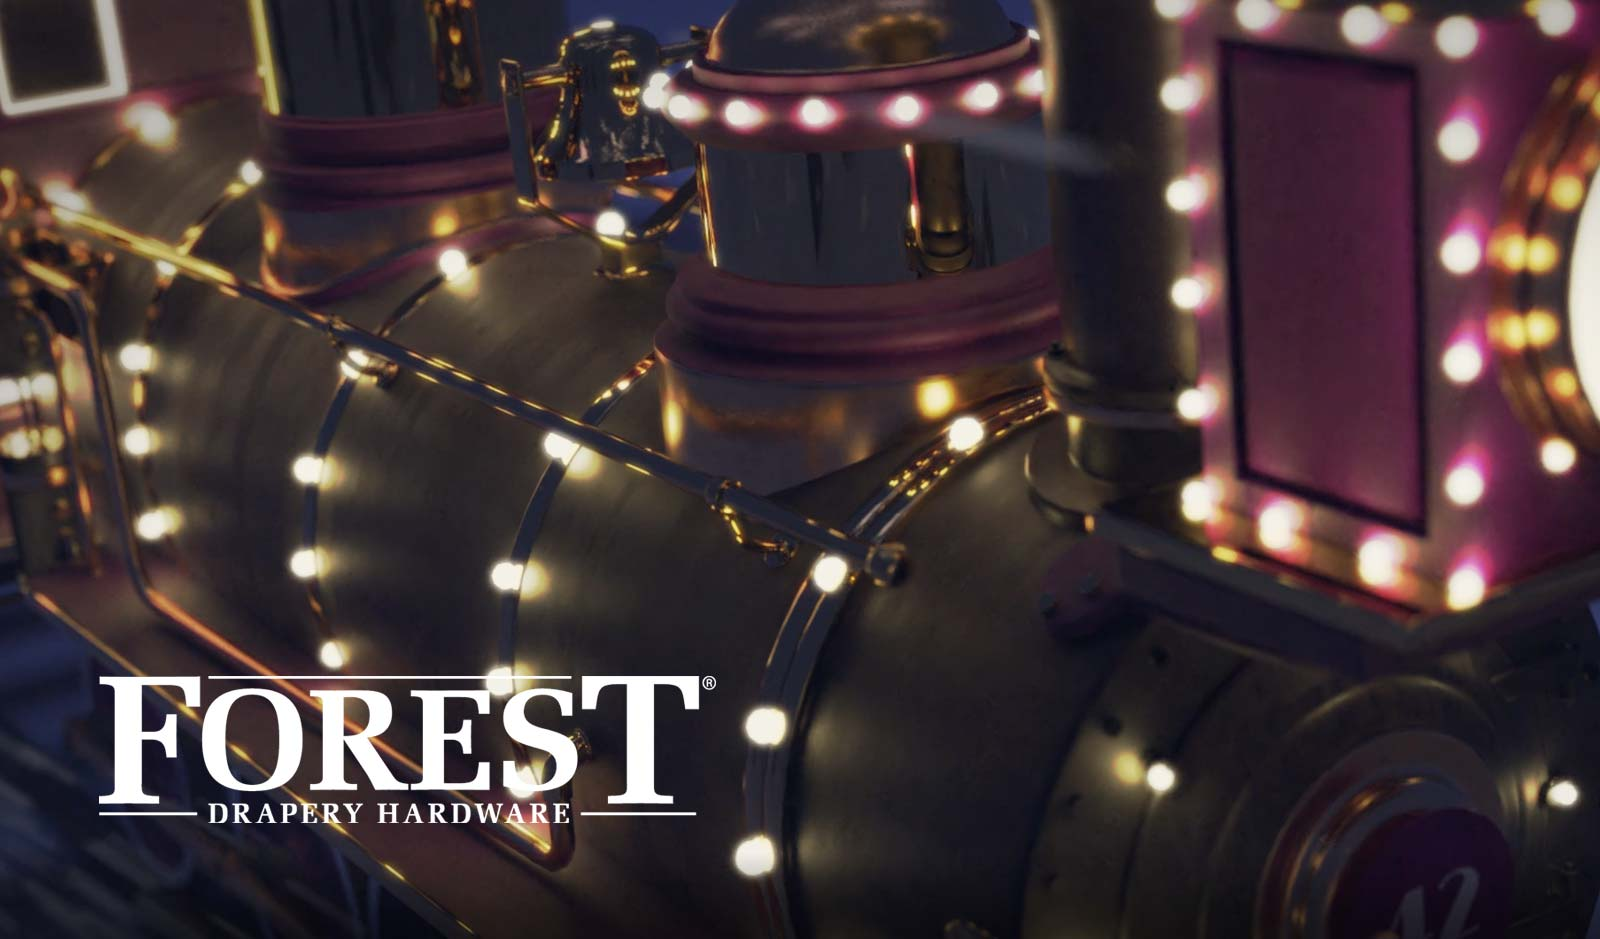 3D animatie Forest drapery hardware christmas